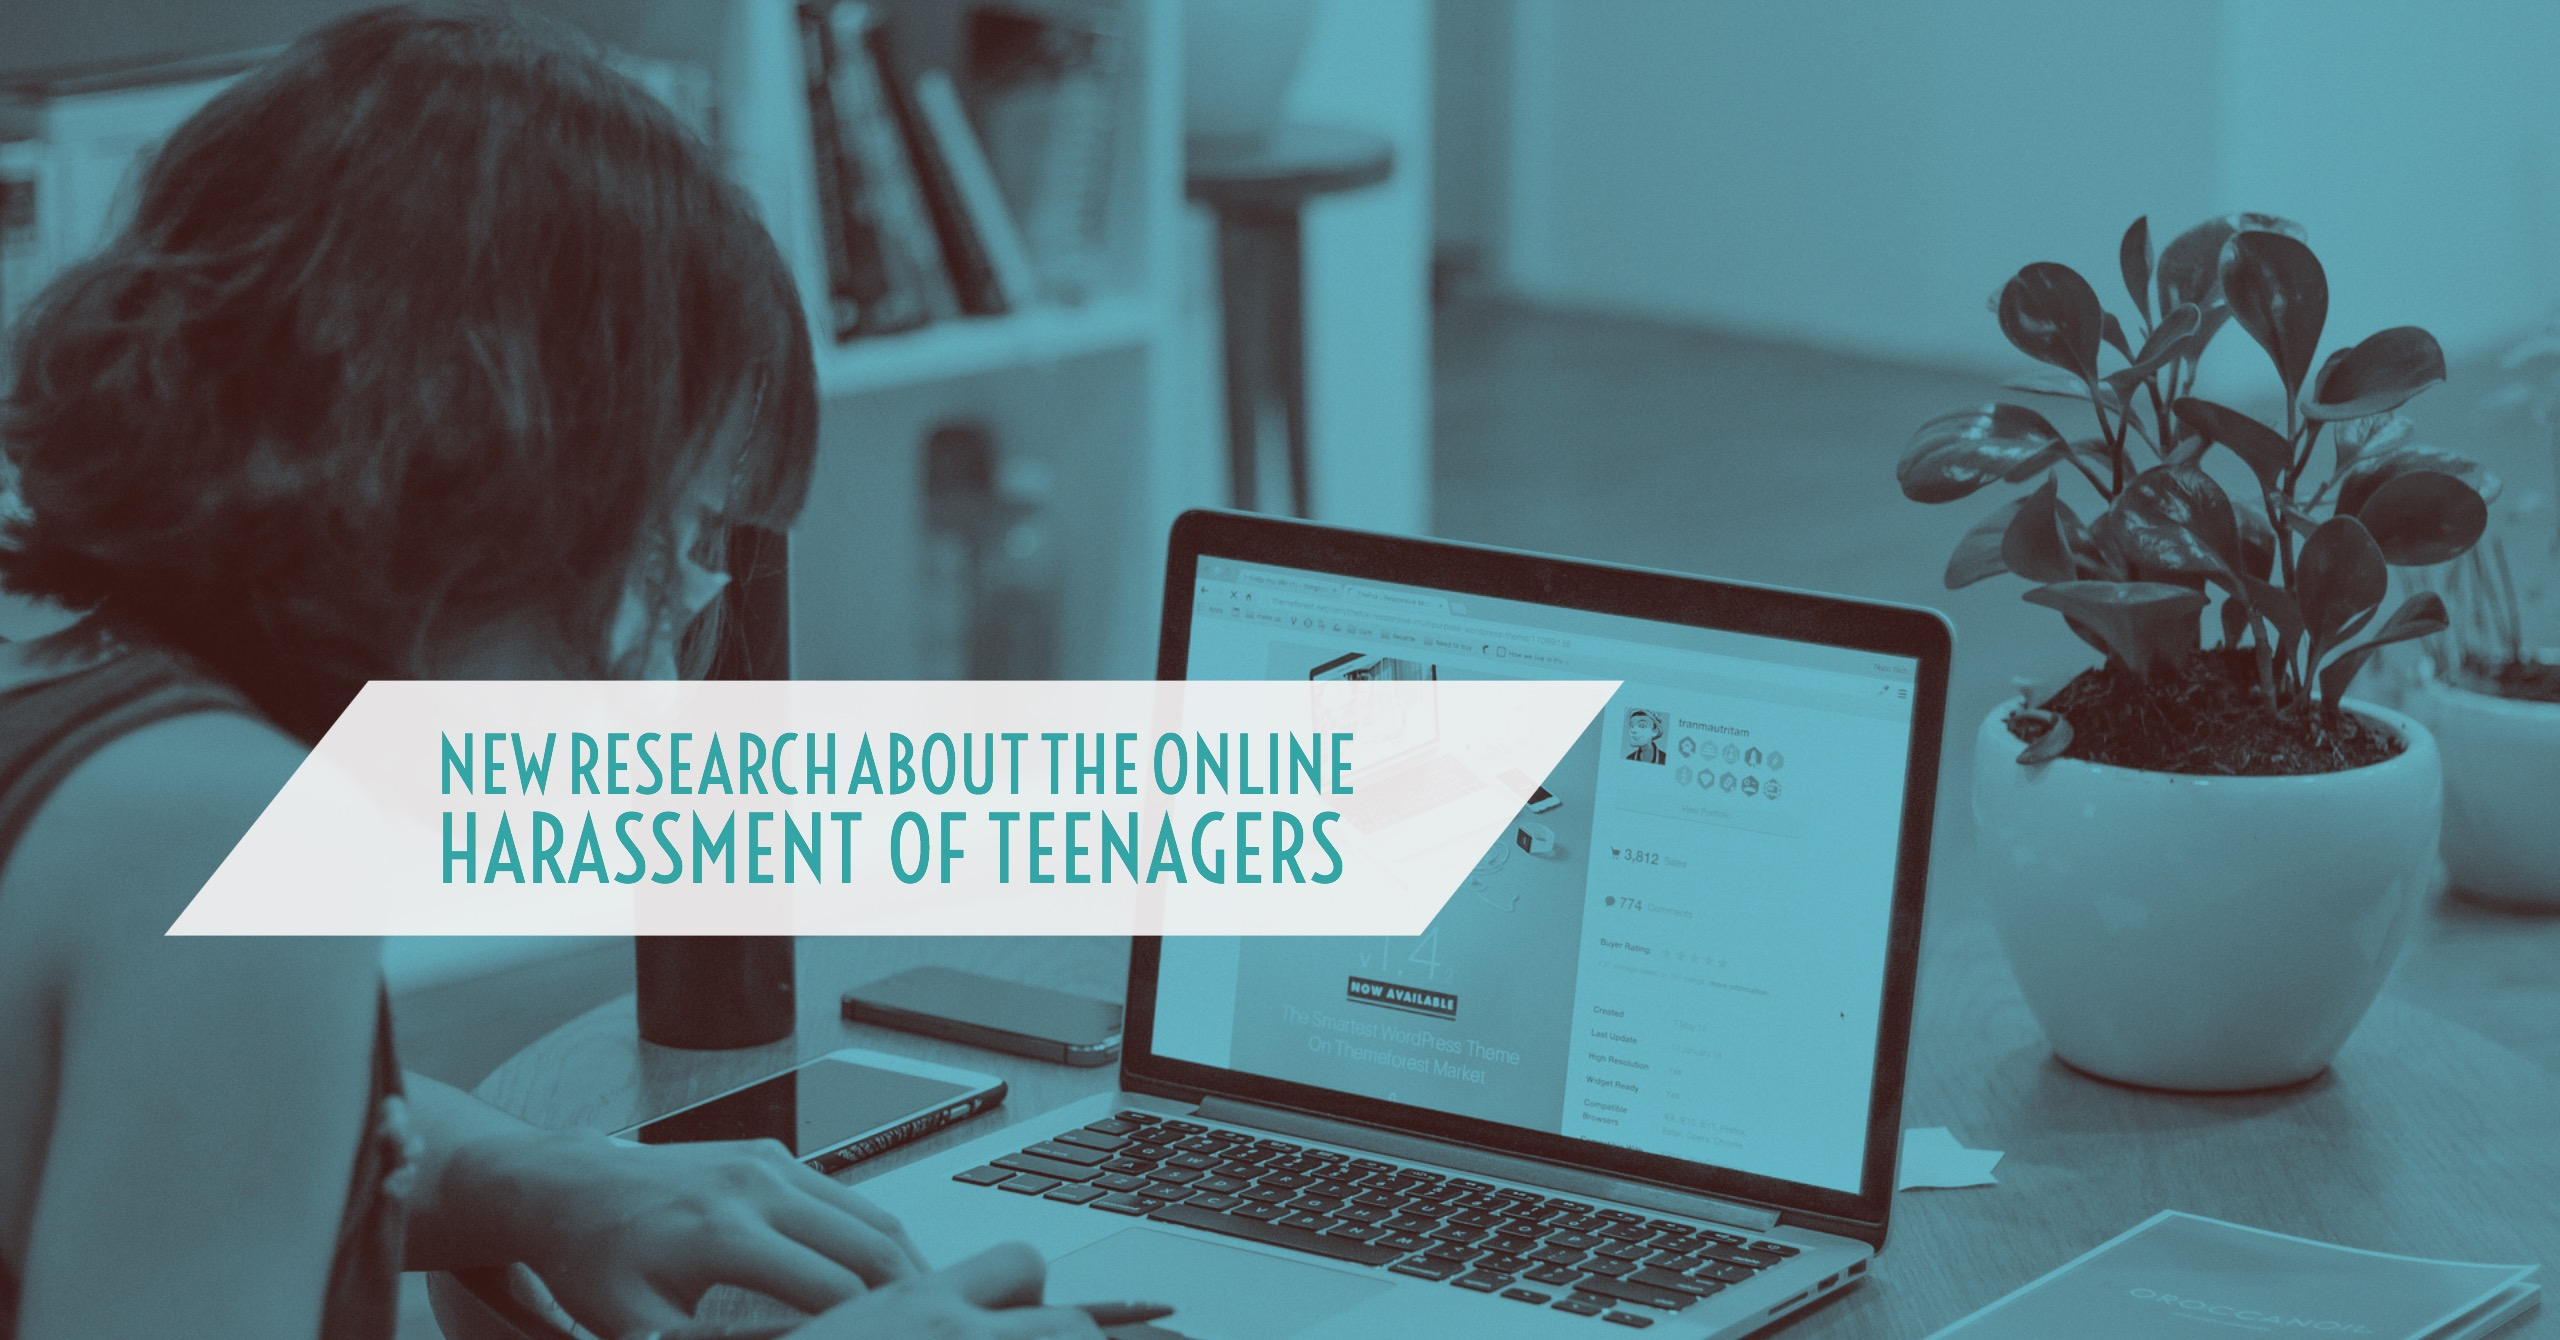 New Research About the Online Harassment of Teenagers